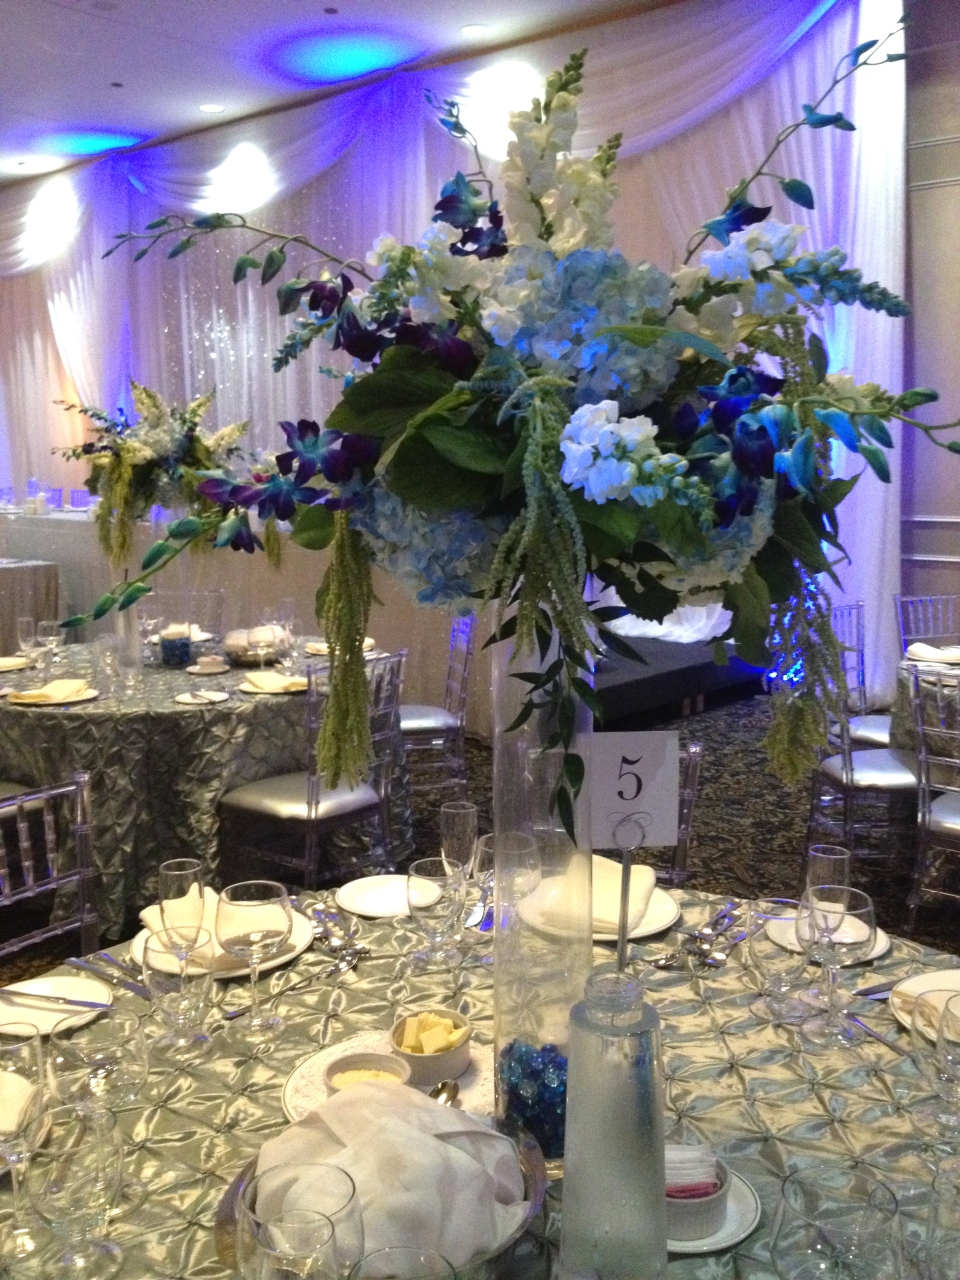 Ocean inspired centerpiece of hydrangea, stock, orchids and amaranthus.